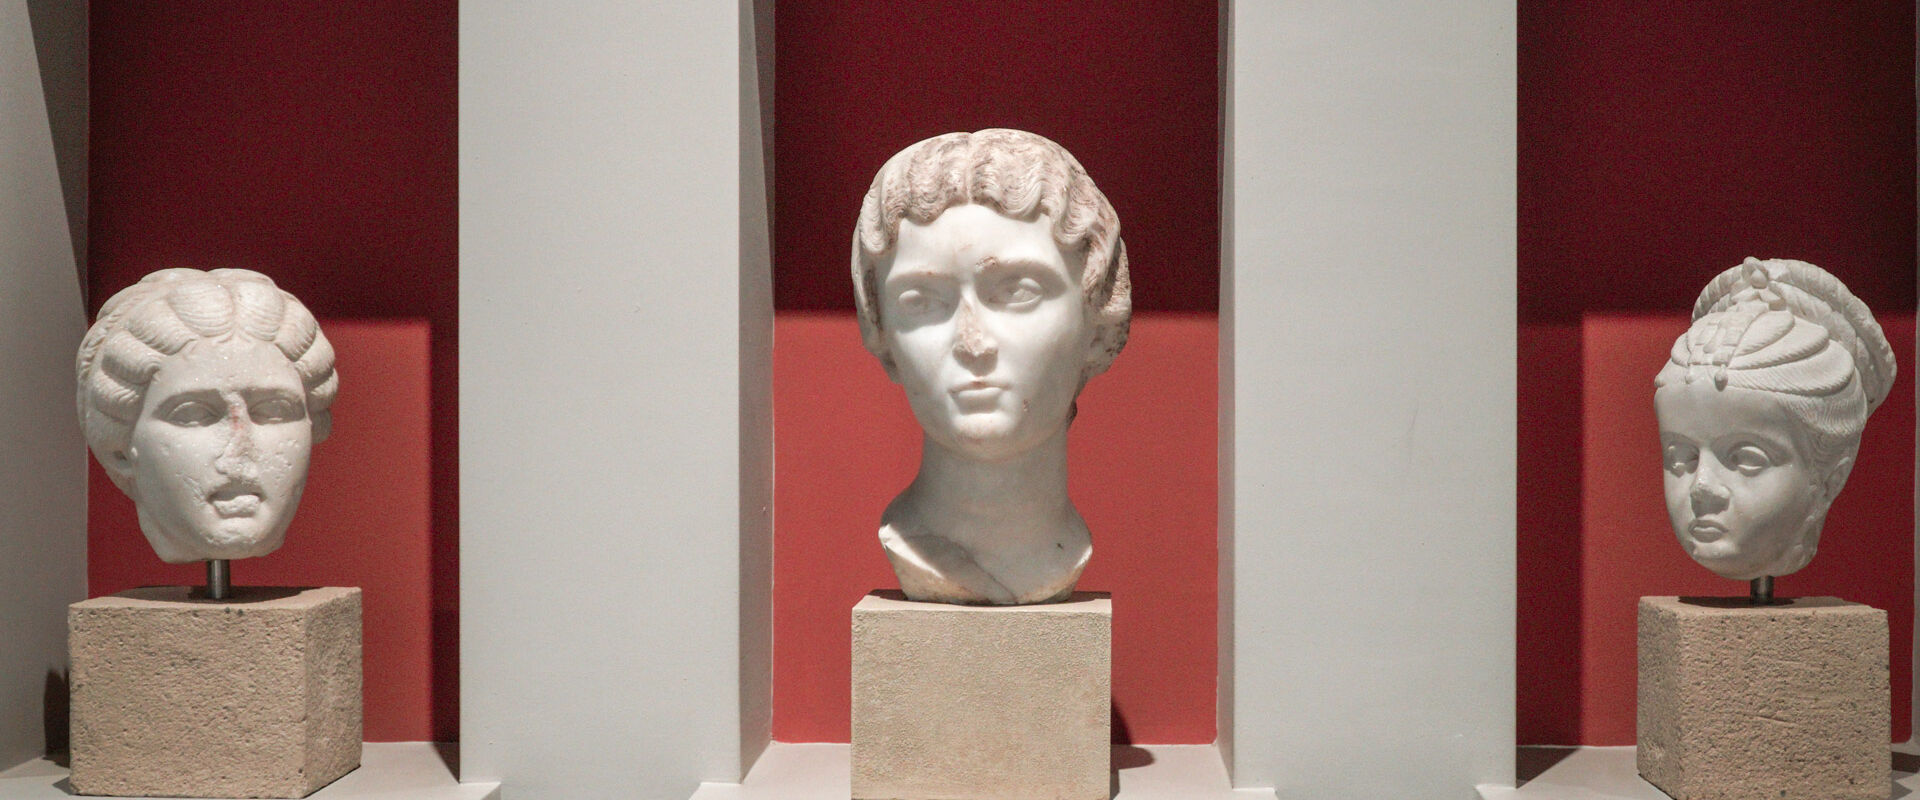 Explore artefacts and monuments at the Archaeological Museum of Thessaloniki